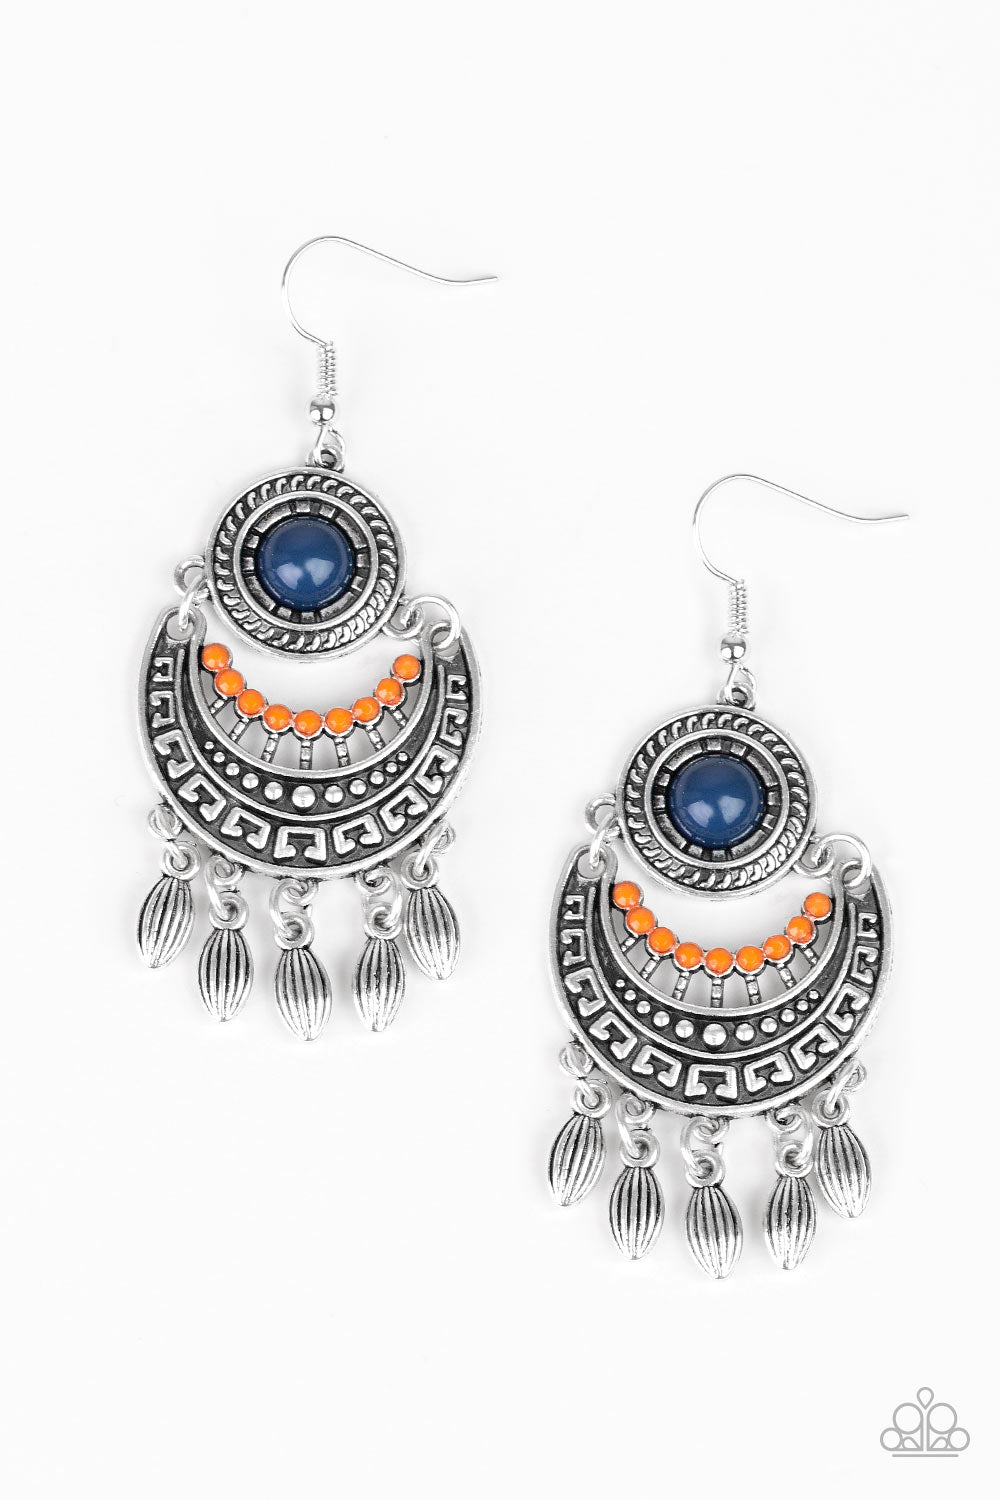 Paparazzi Accessories - Mantra To Mantra - Multicolor Earrings - JMJ Jewelry Collection